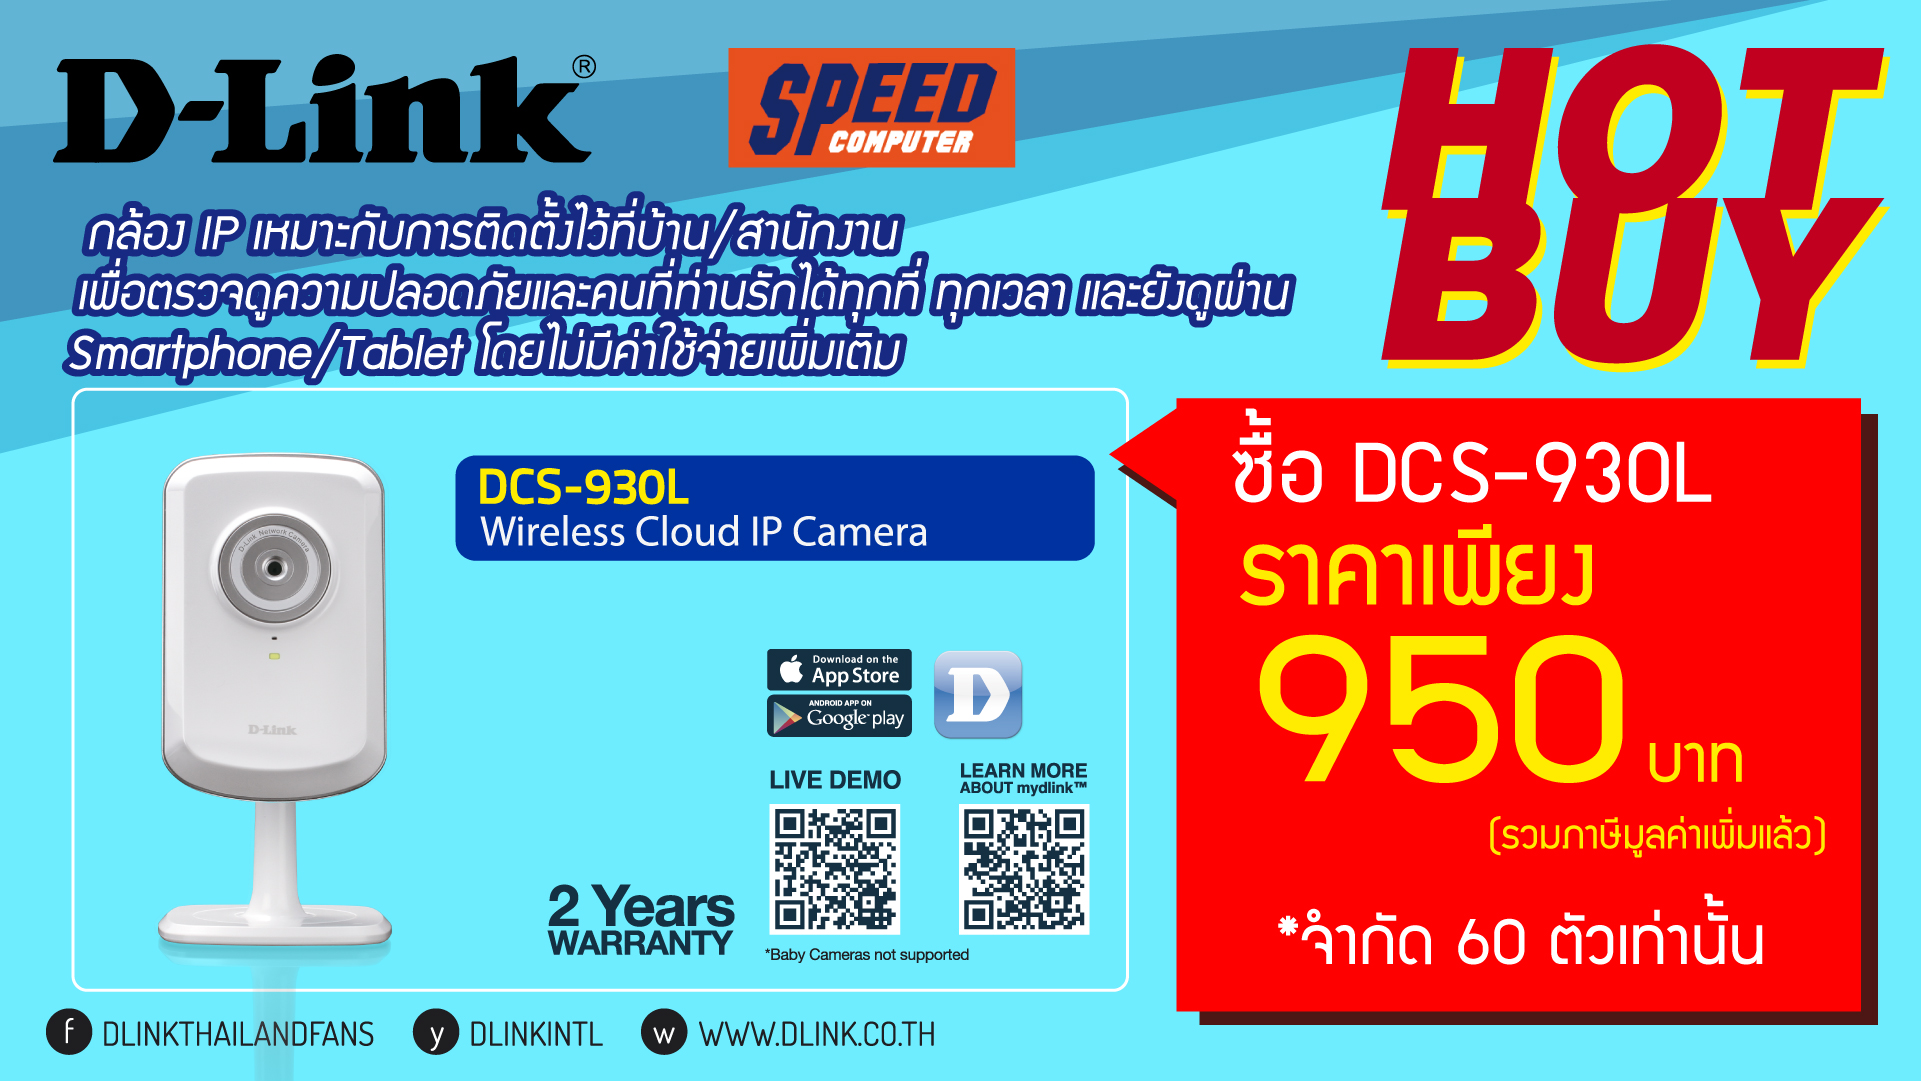 D-Link-Commart-Screen-for-Speed-March-16-04